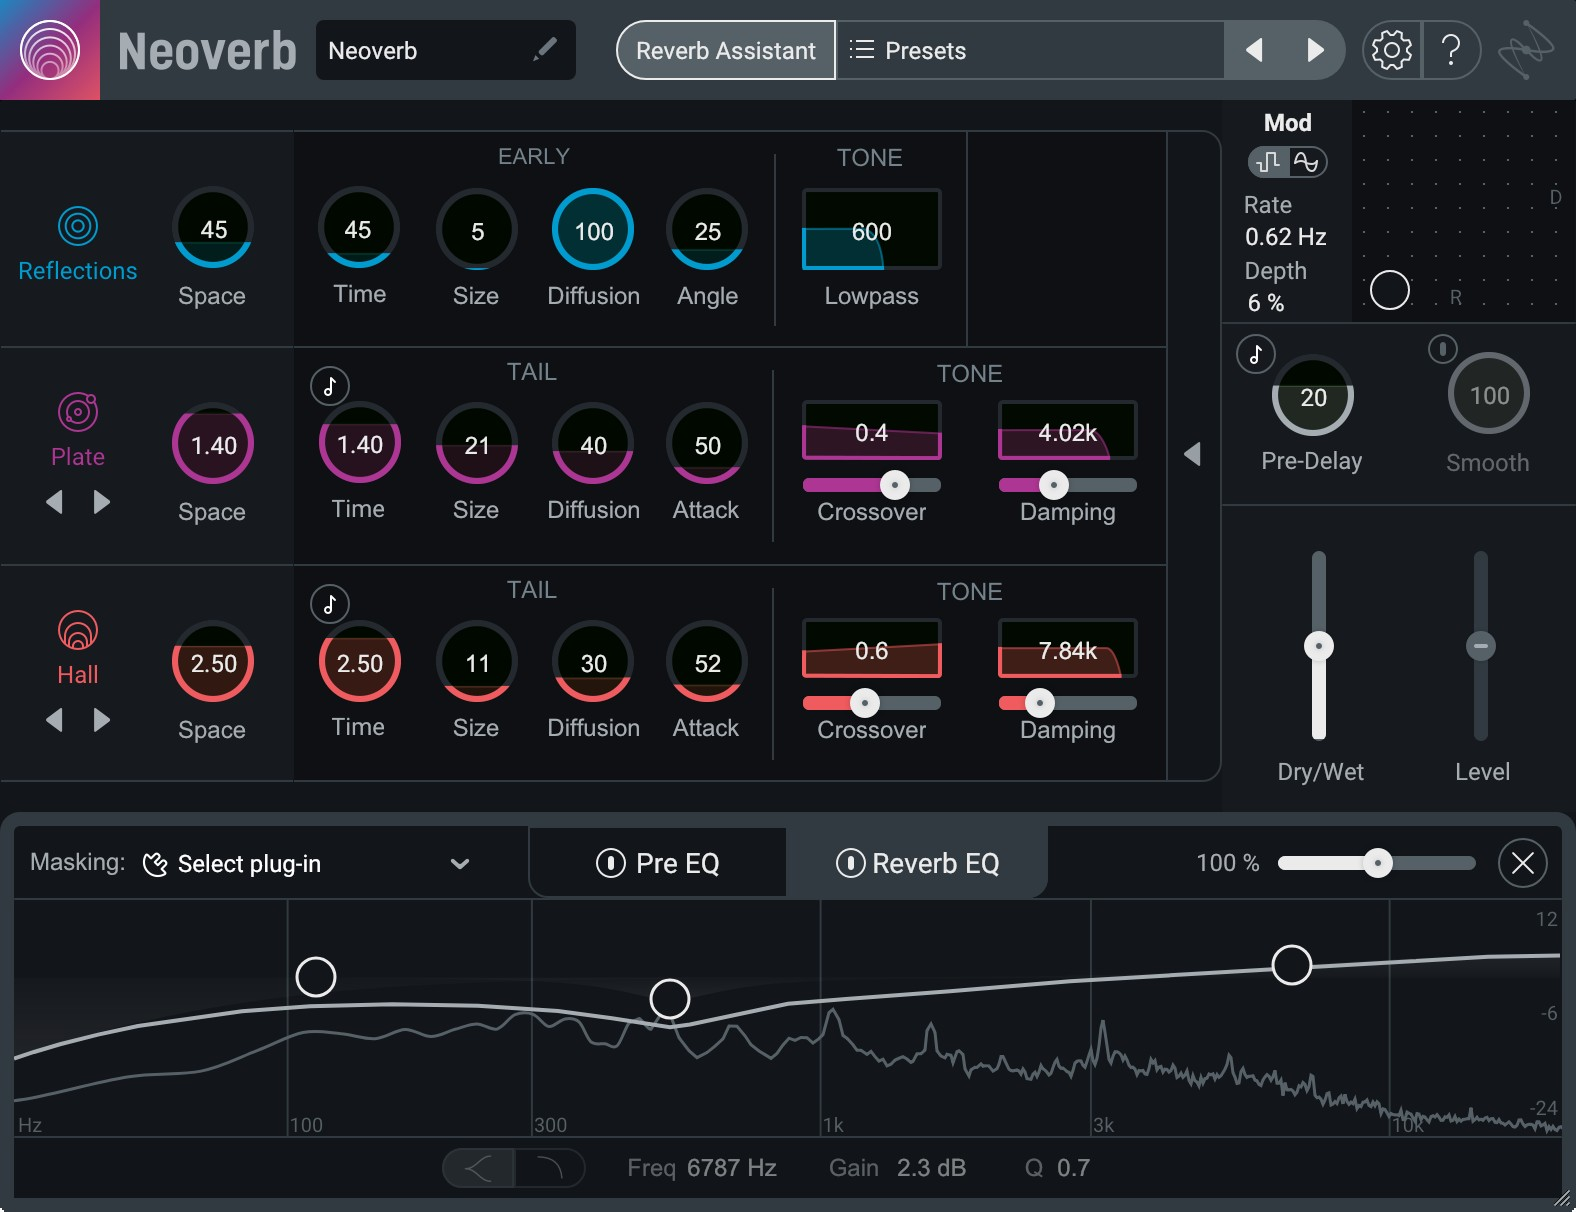 iZotope Neoverb Advanced Settings